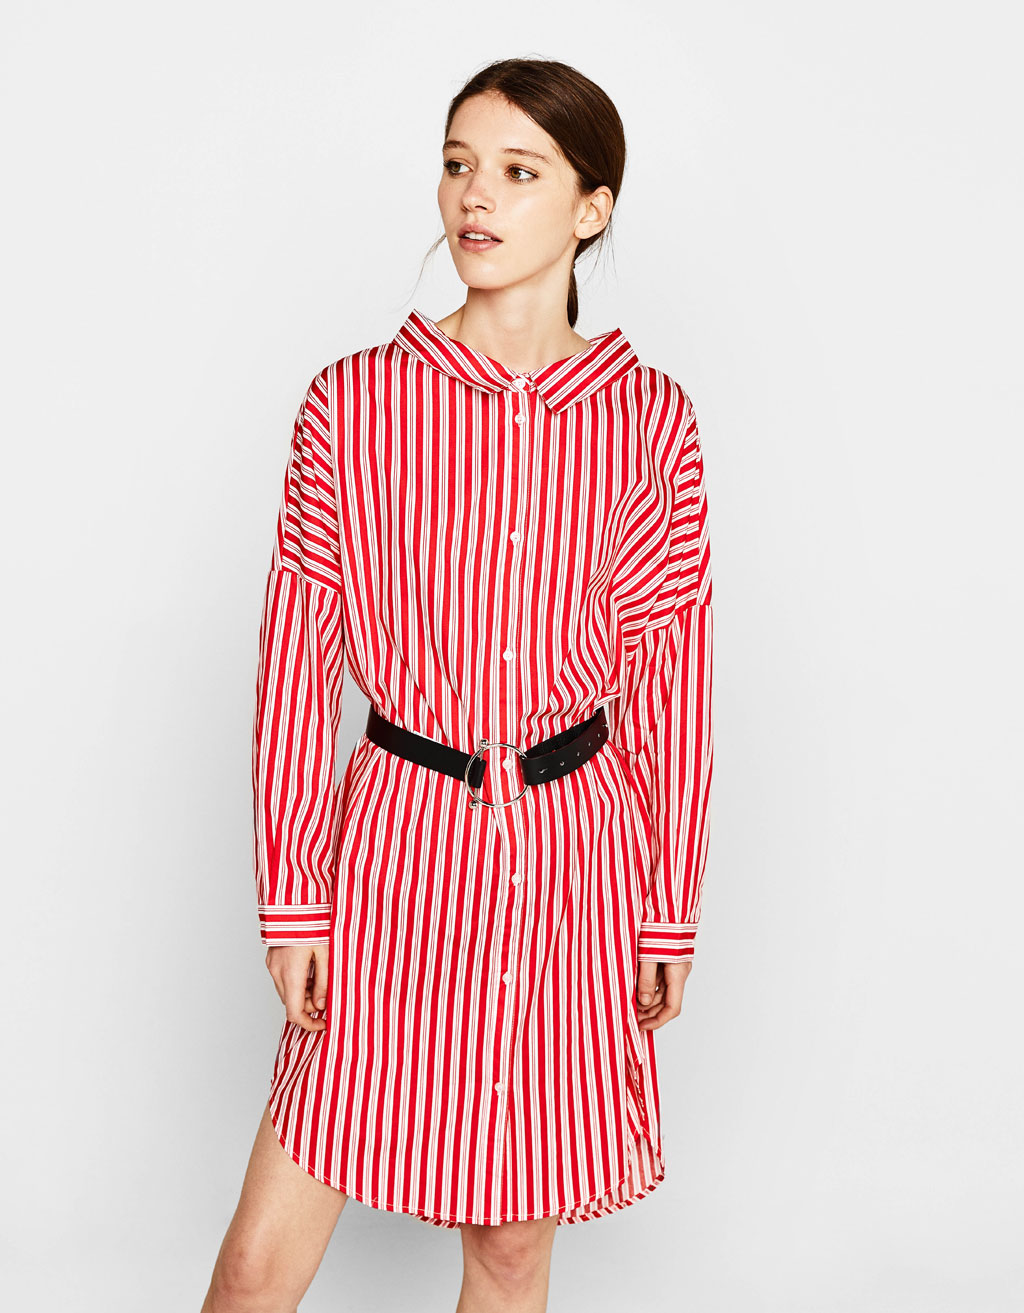 Shirt dress with ring in the back